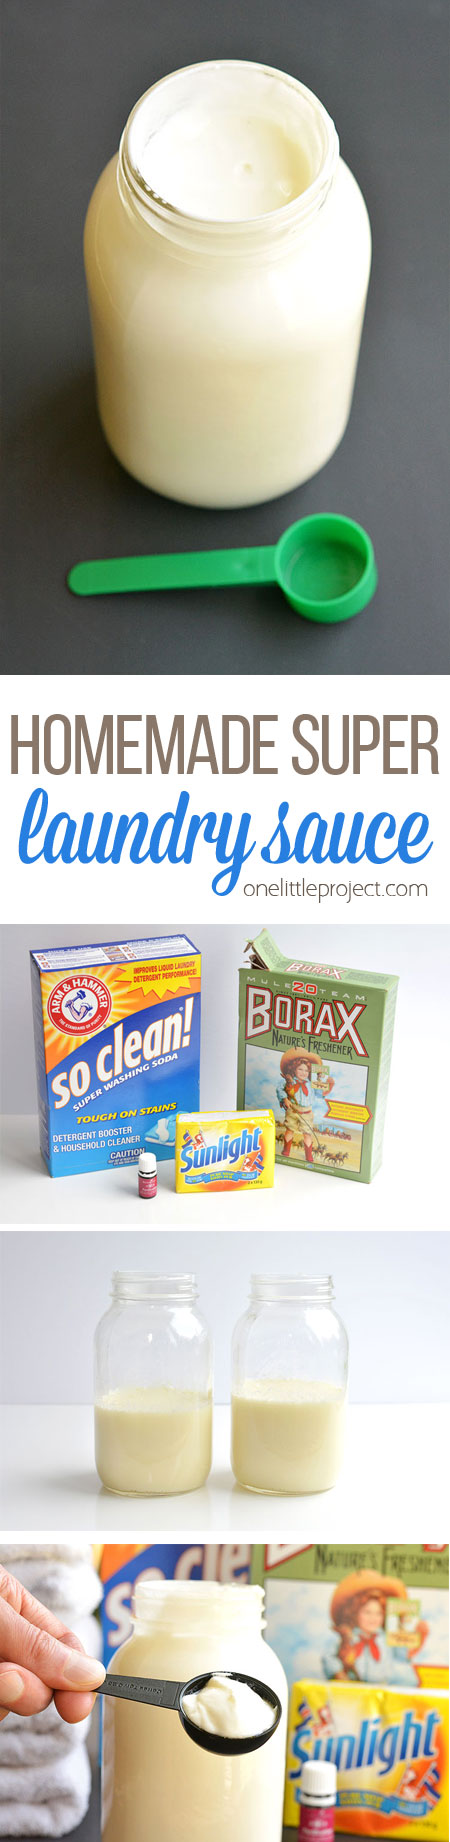 Homemade Super Laundry Sauce | DIY